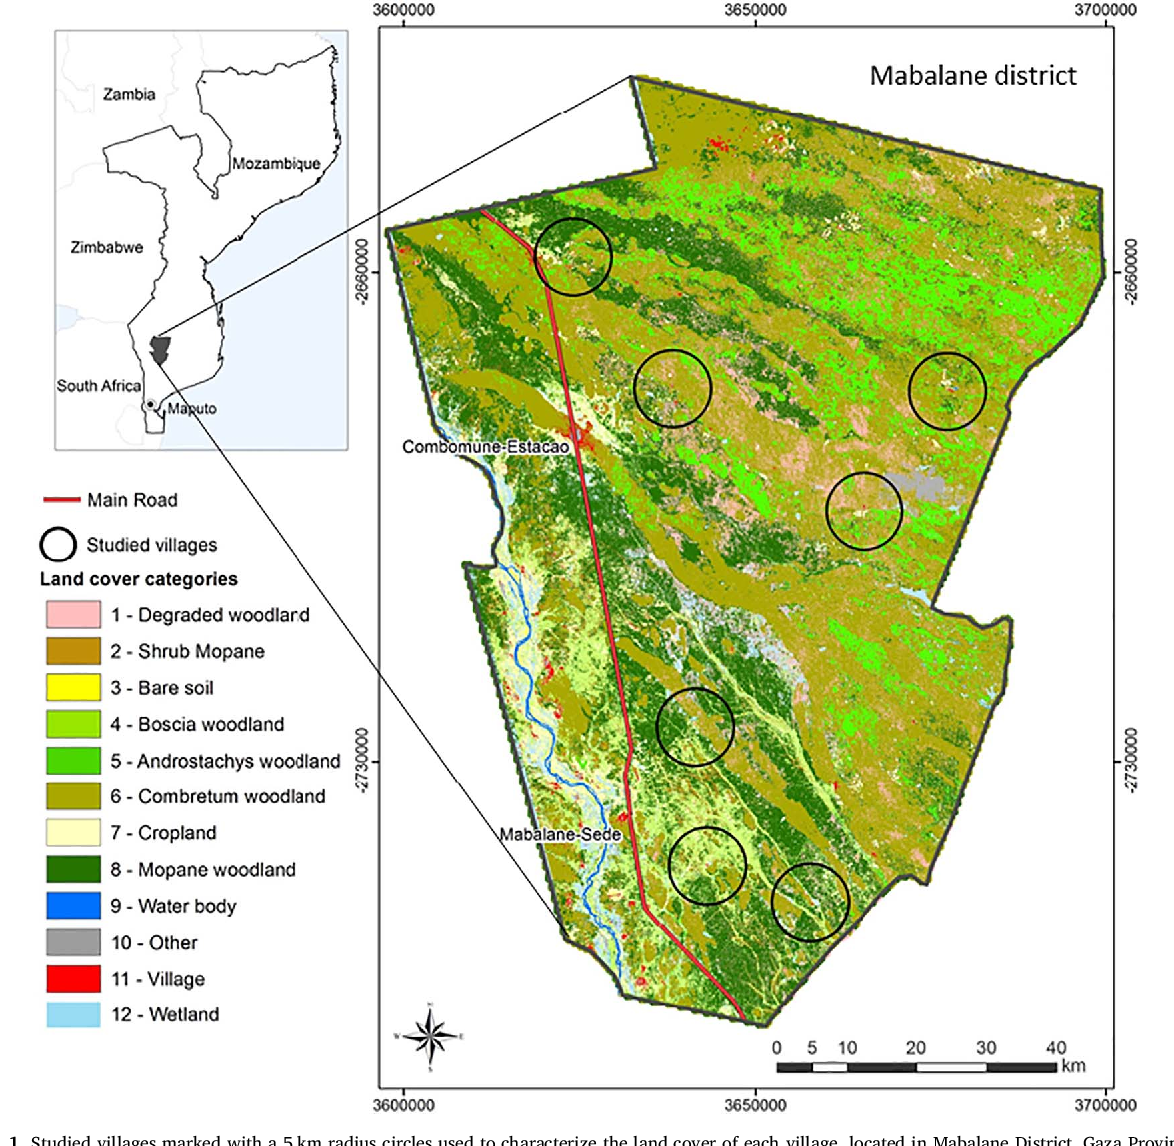 Fig. 1. Studied villages marked with a 5 km radius circles used to characterize the land cover of each village, located in Mabalane District, Gaza Province.